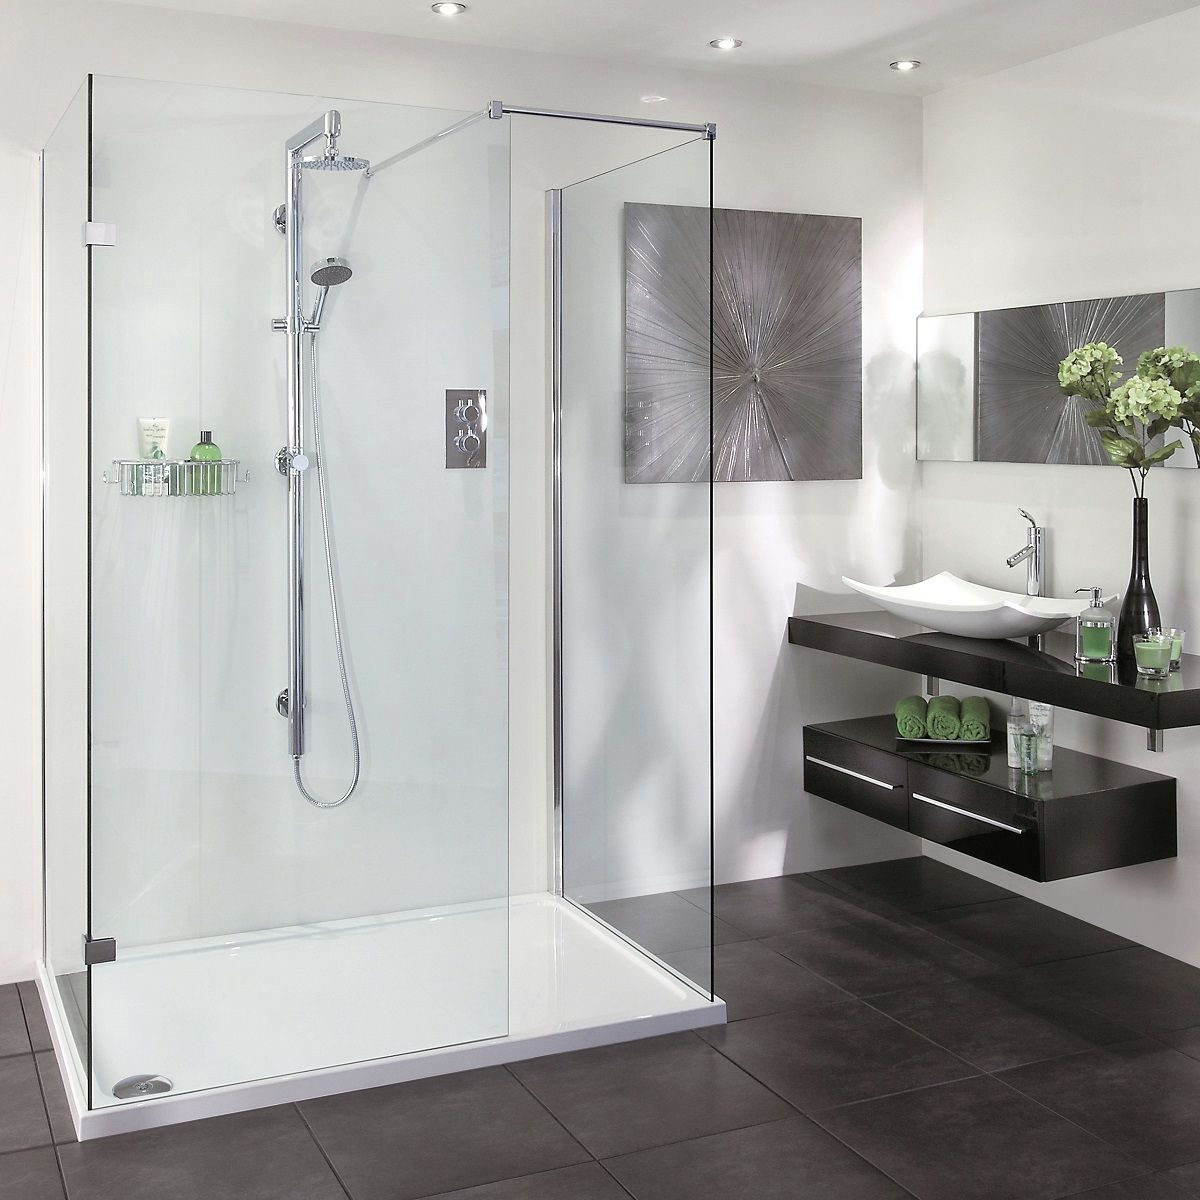 picture of a walk in shower enclosure